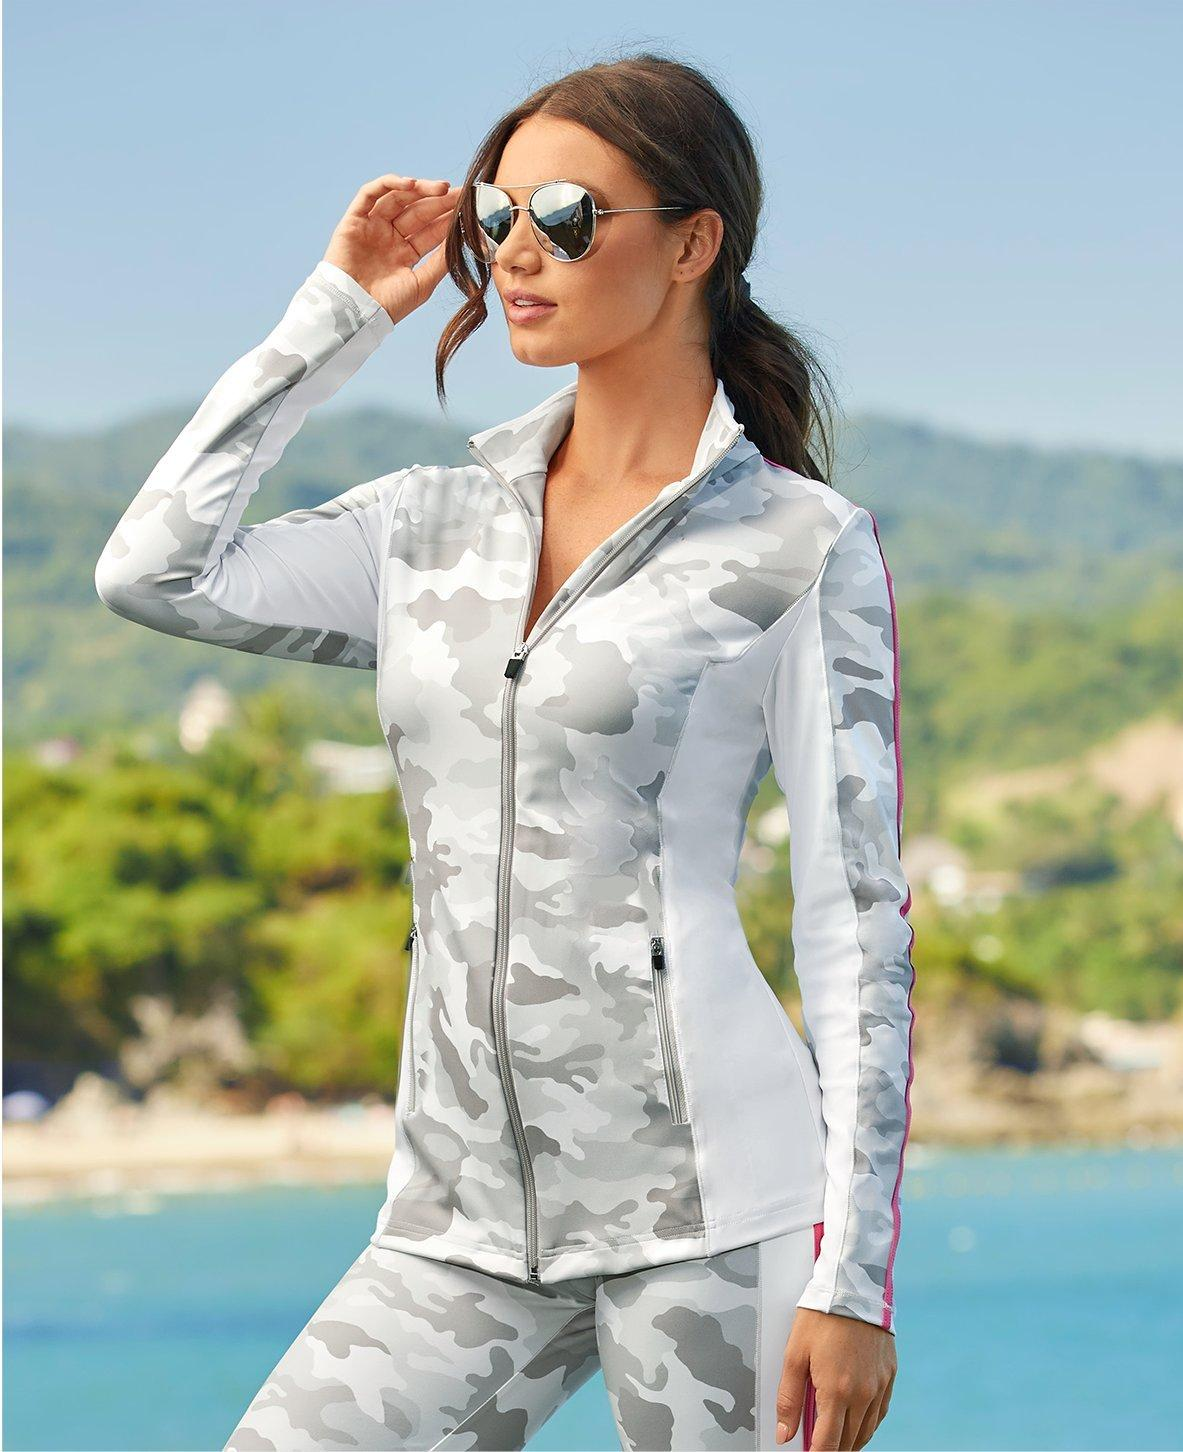 model wearing a gray camo print two-piece sport set and sunglasses.